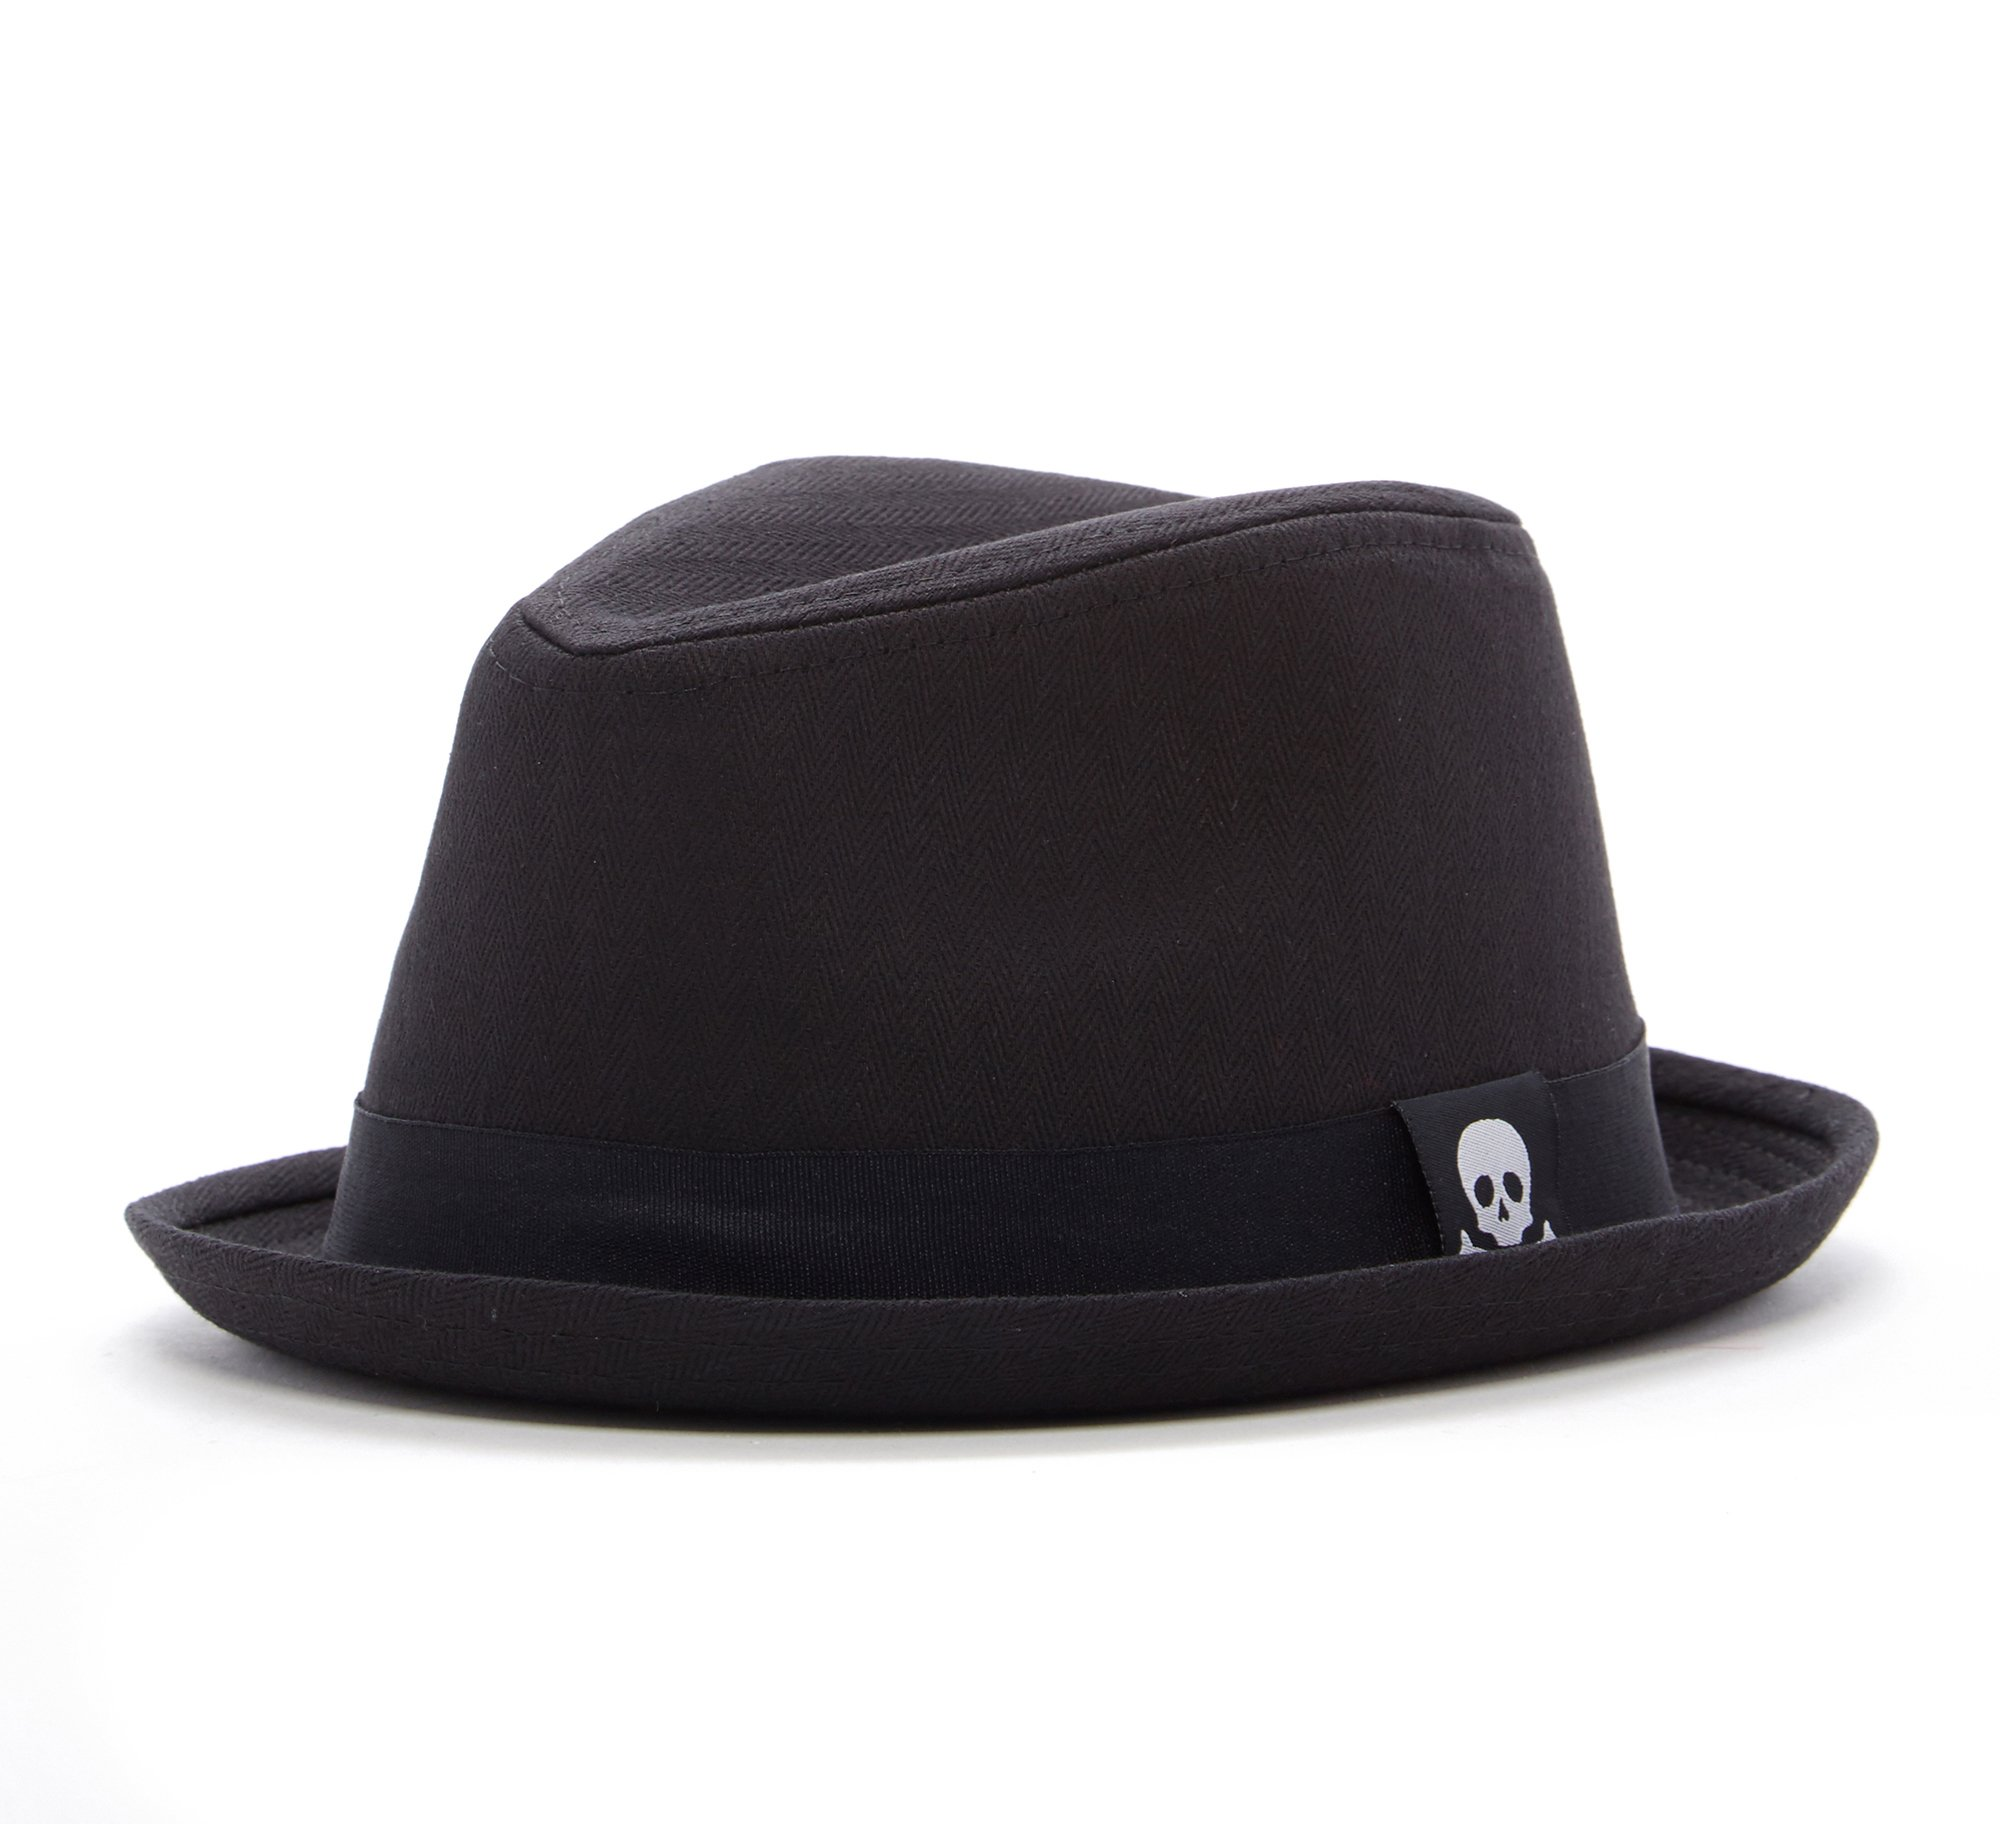 Born to Love Boy's Fedora Hat With Skull-Black And White -L (55 cm 5-9 years)